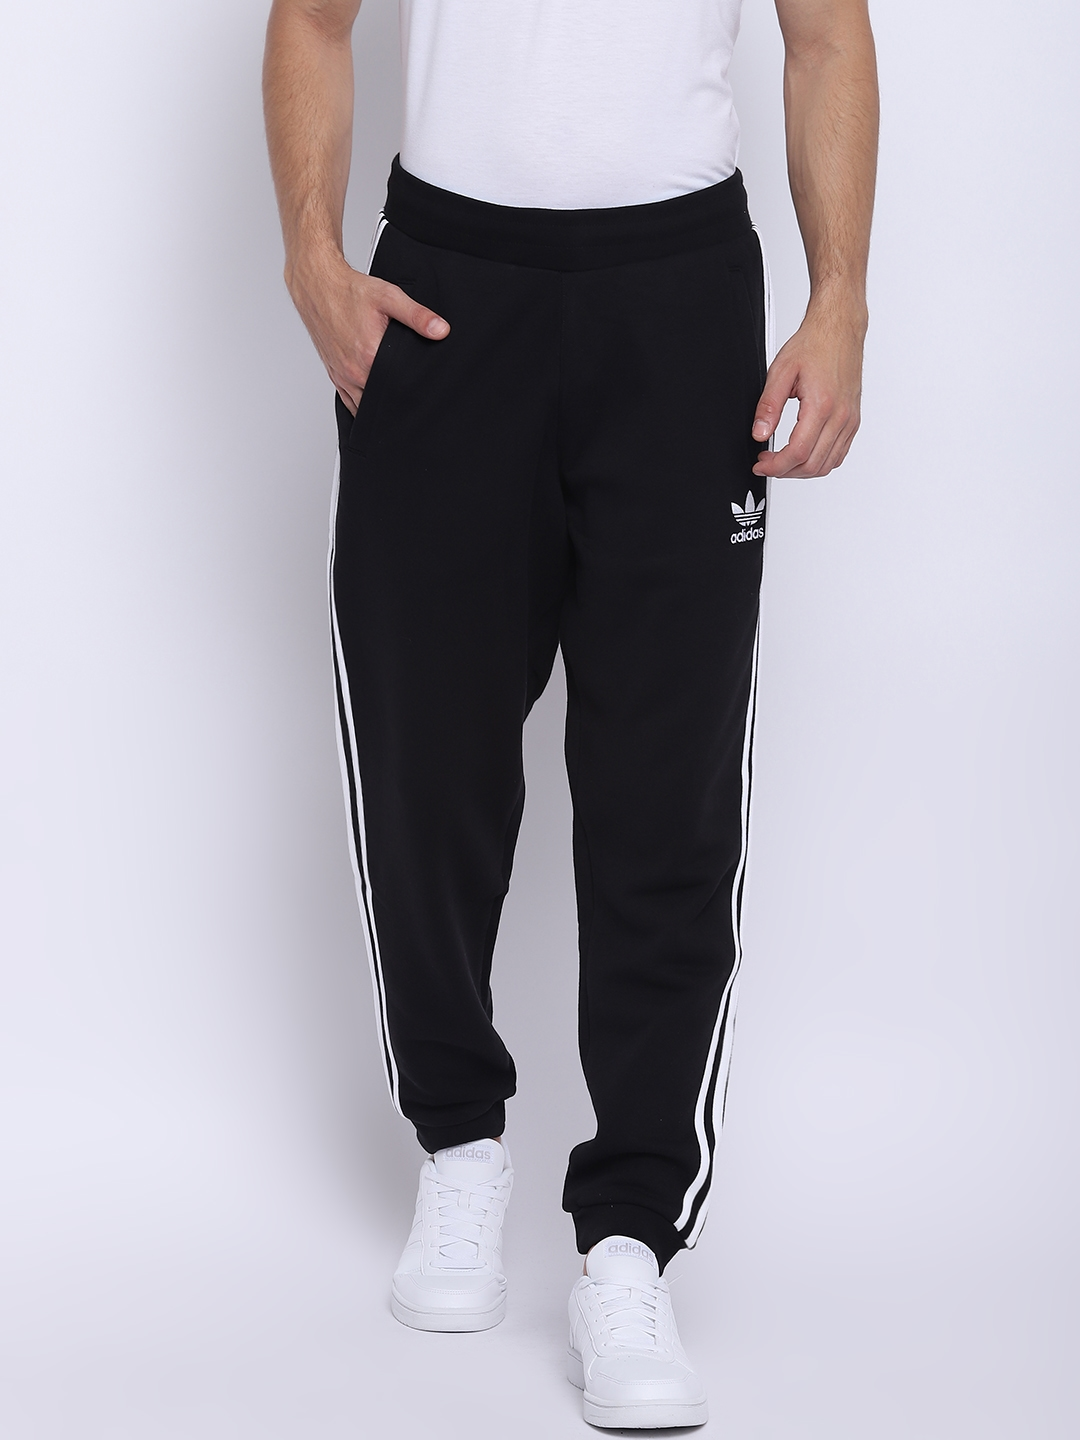 353860a4d 3a015683-cb6f-4a96-bf87-1f66f4aca9f41538370422564-Adidas-Originals-Men -Black-3-Stripes-Joggers-5111538370422389-1.jpg